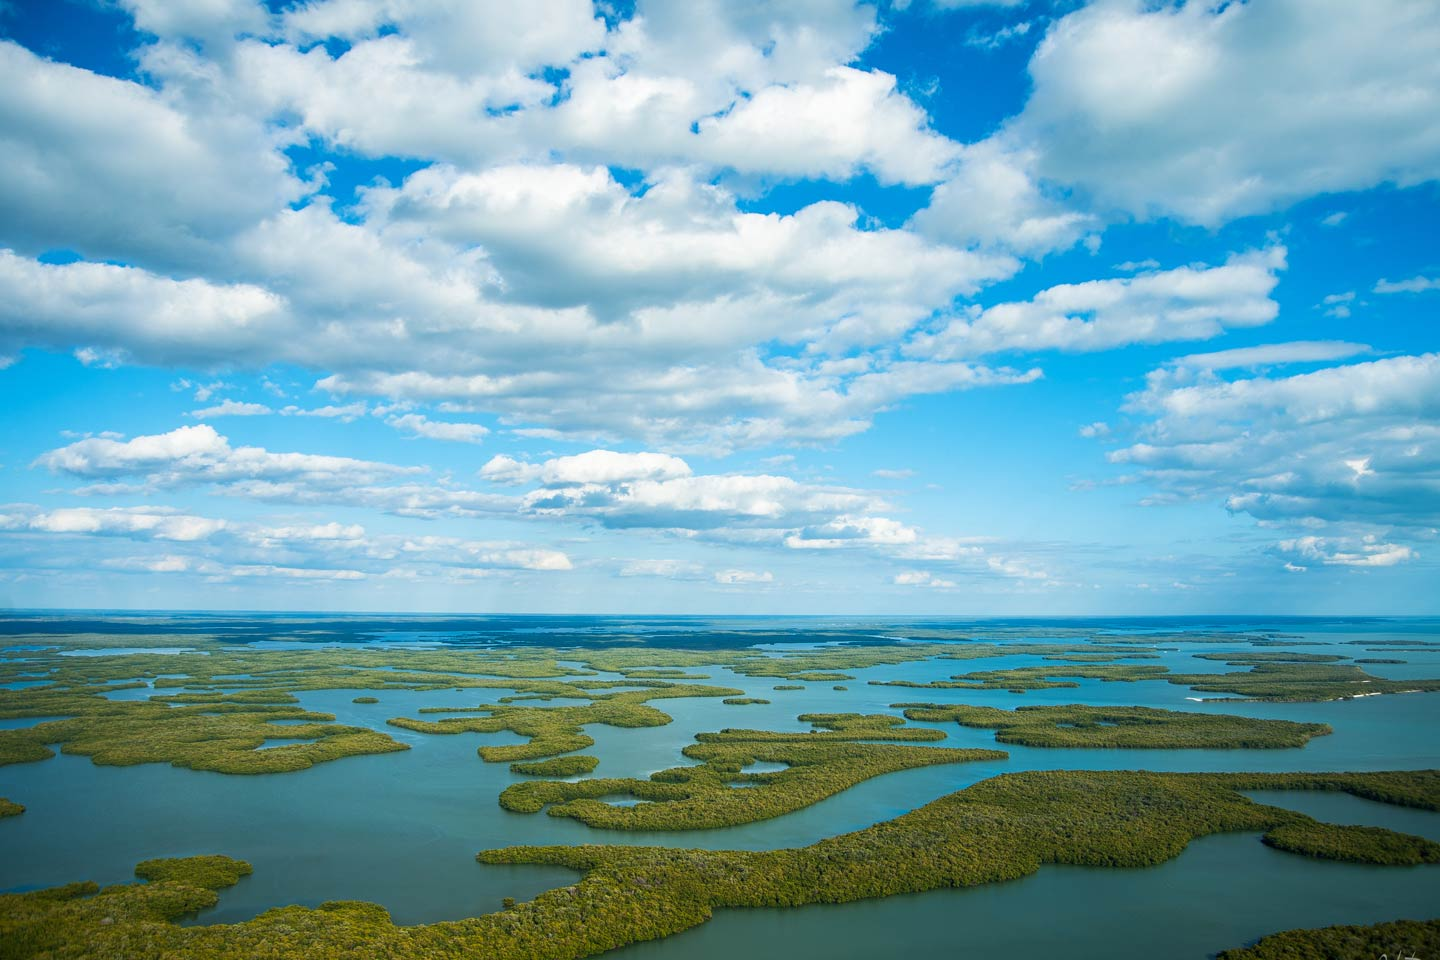 Aerial view of the Ten Thousand Islands in the Everglades National Park